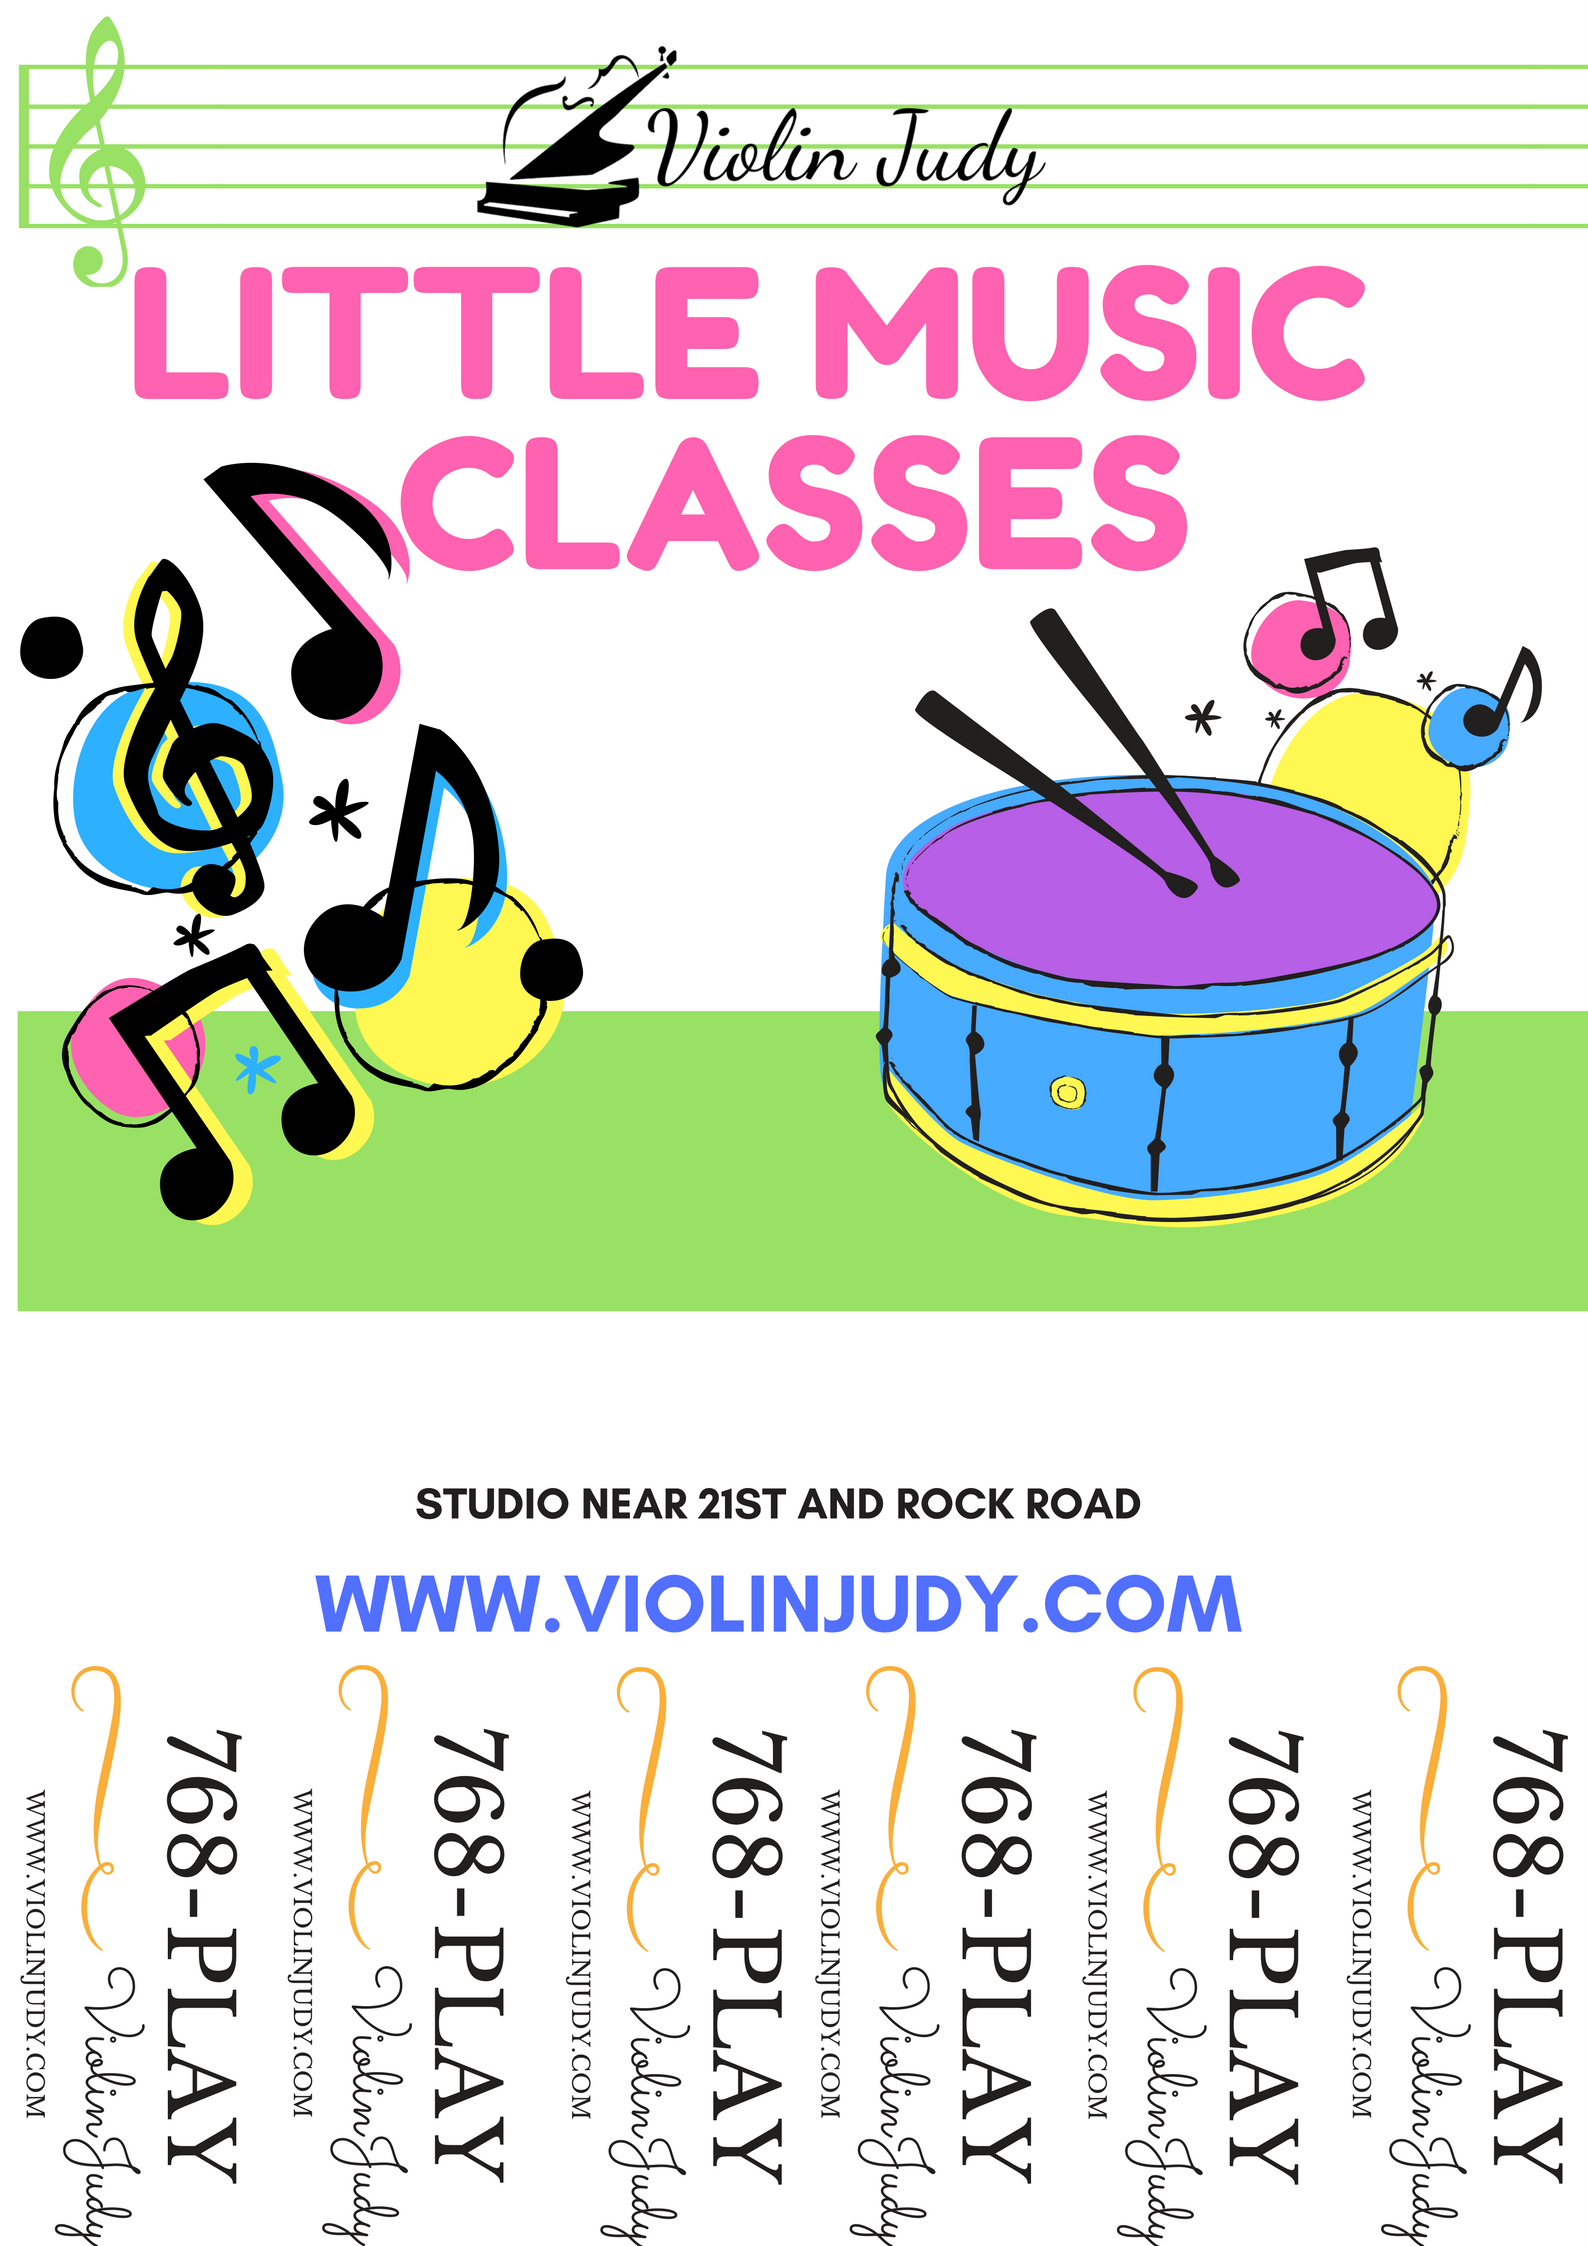 Starting your own Little Music Classes - ViolinJudy